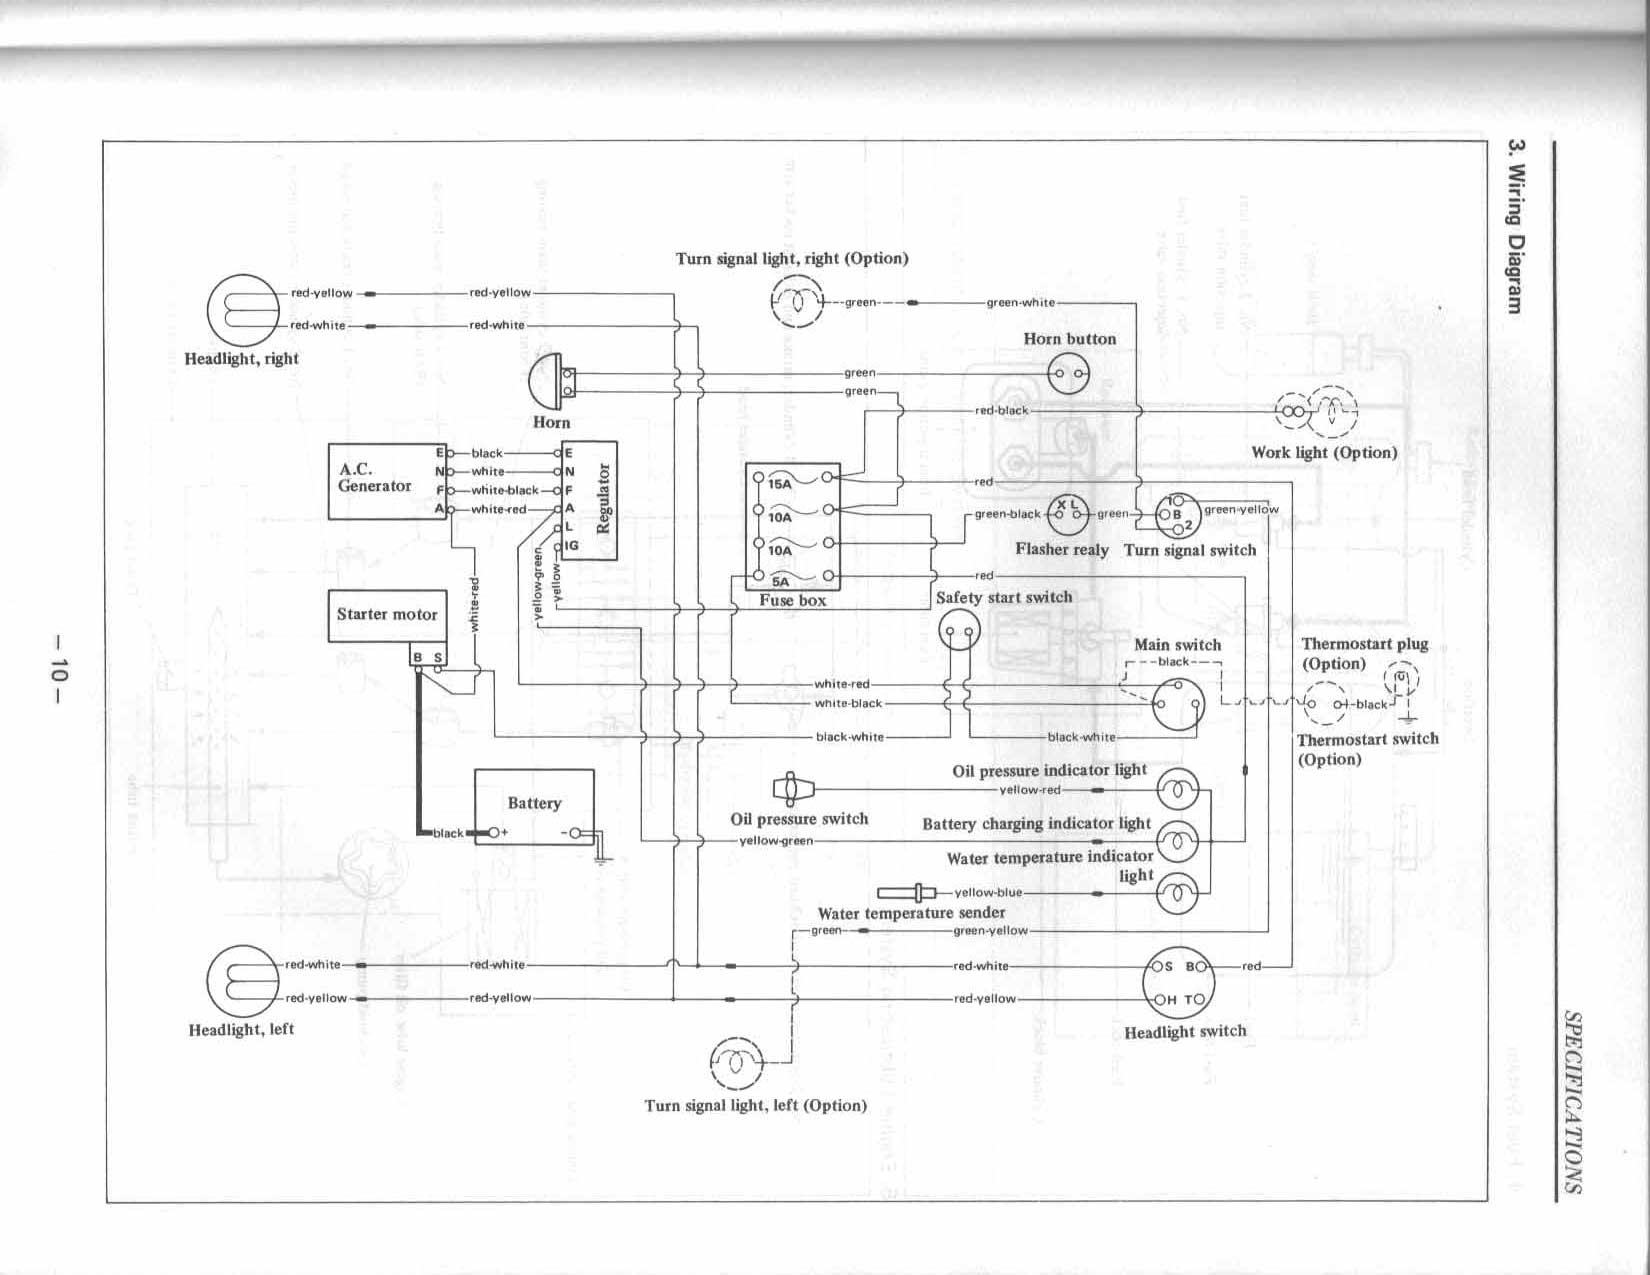 wiring diagram l series kubota schematics and wiring diagrams bosch alternator wiring diagram eljac